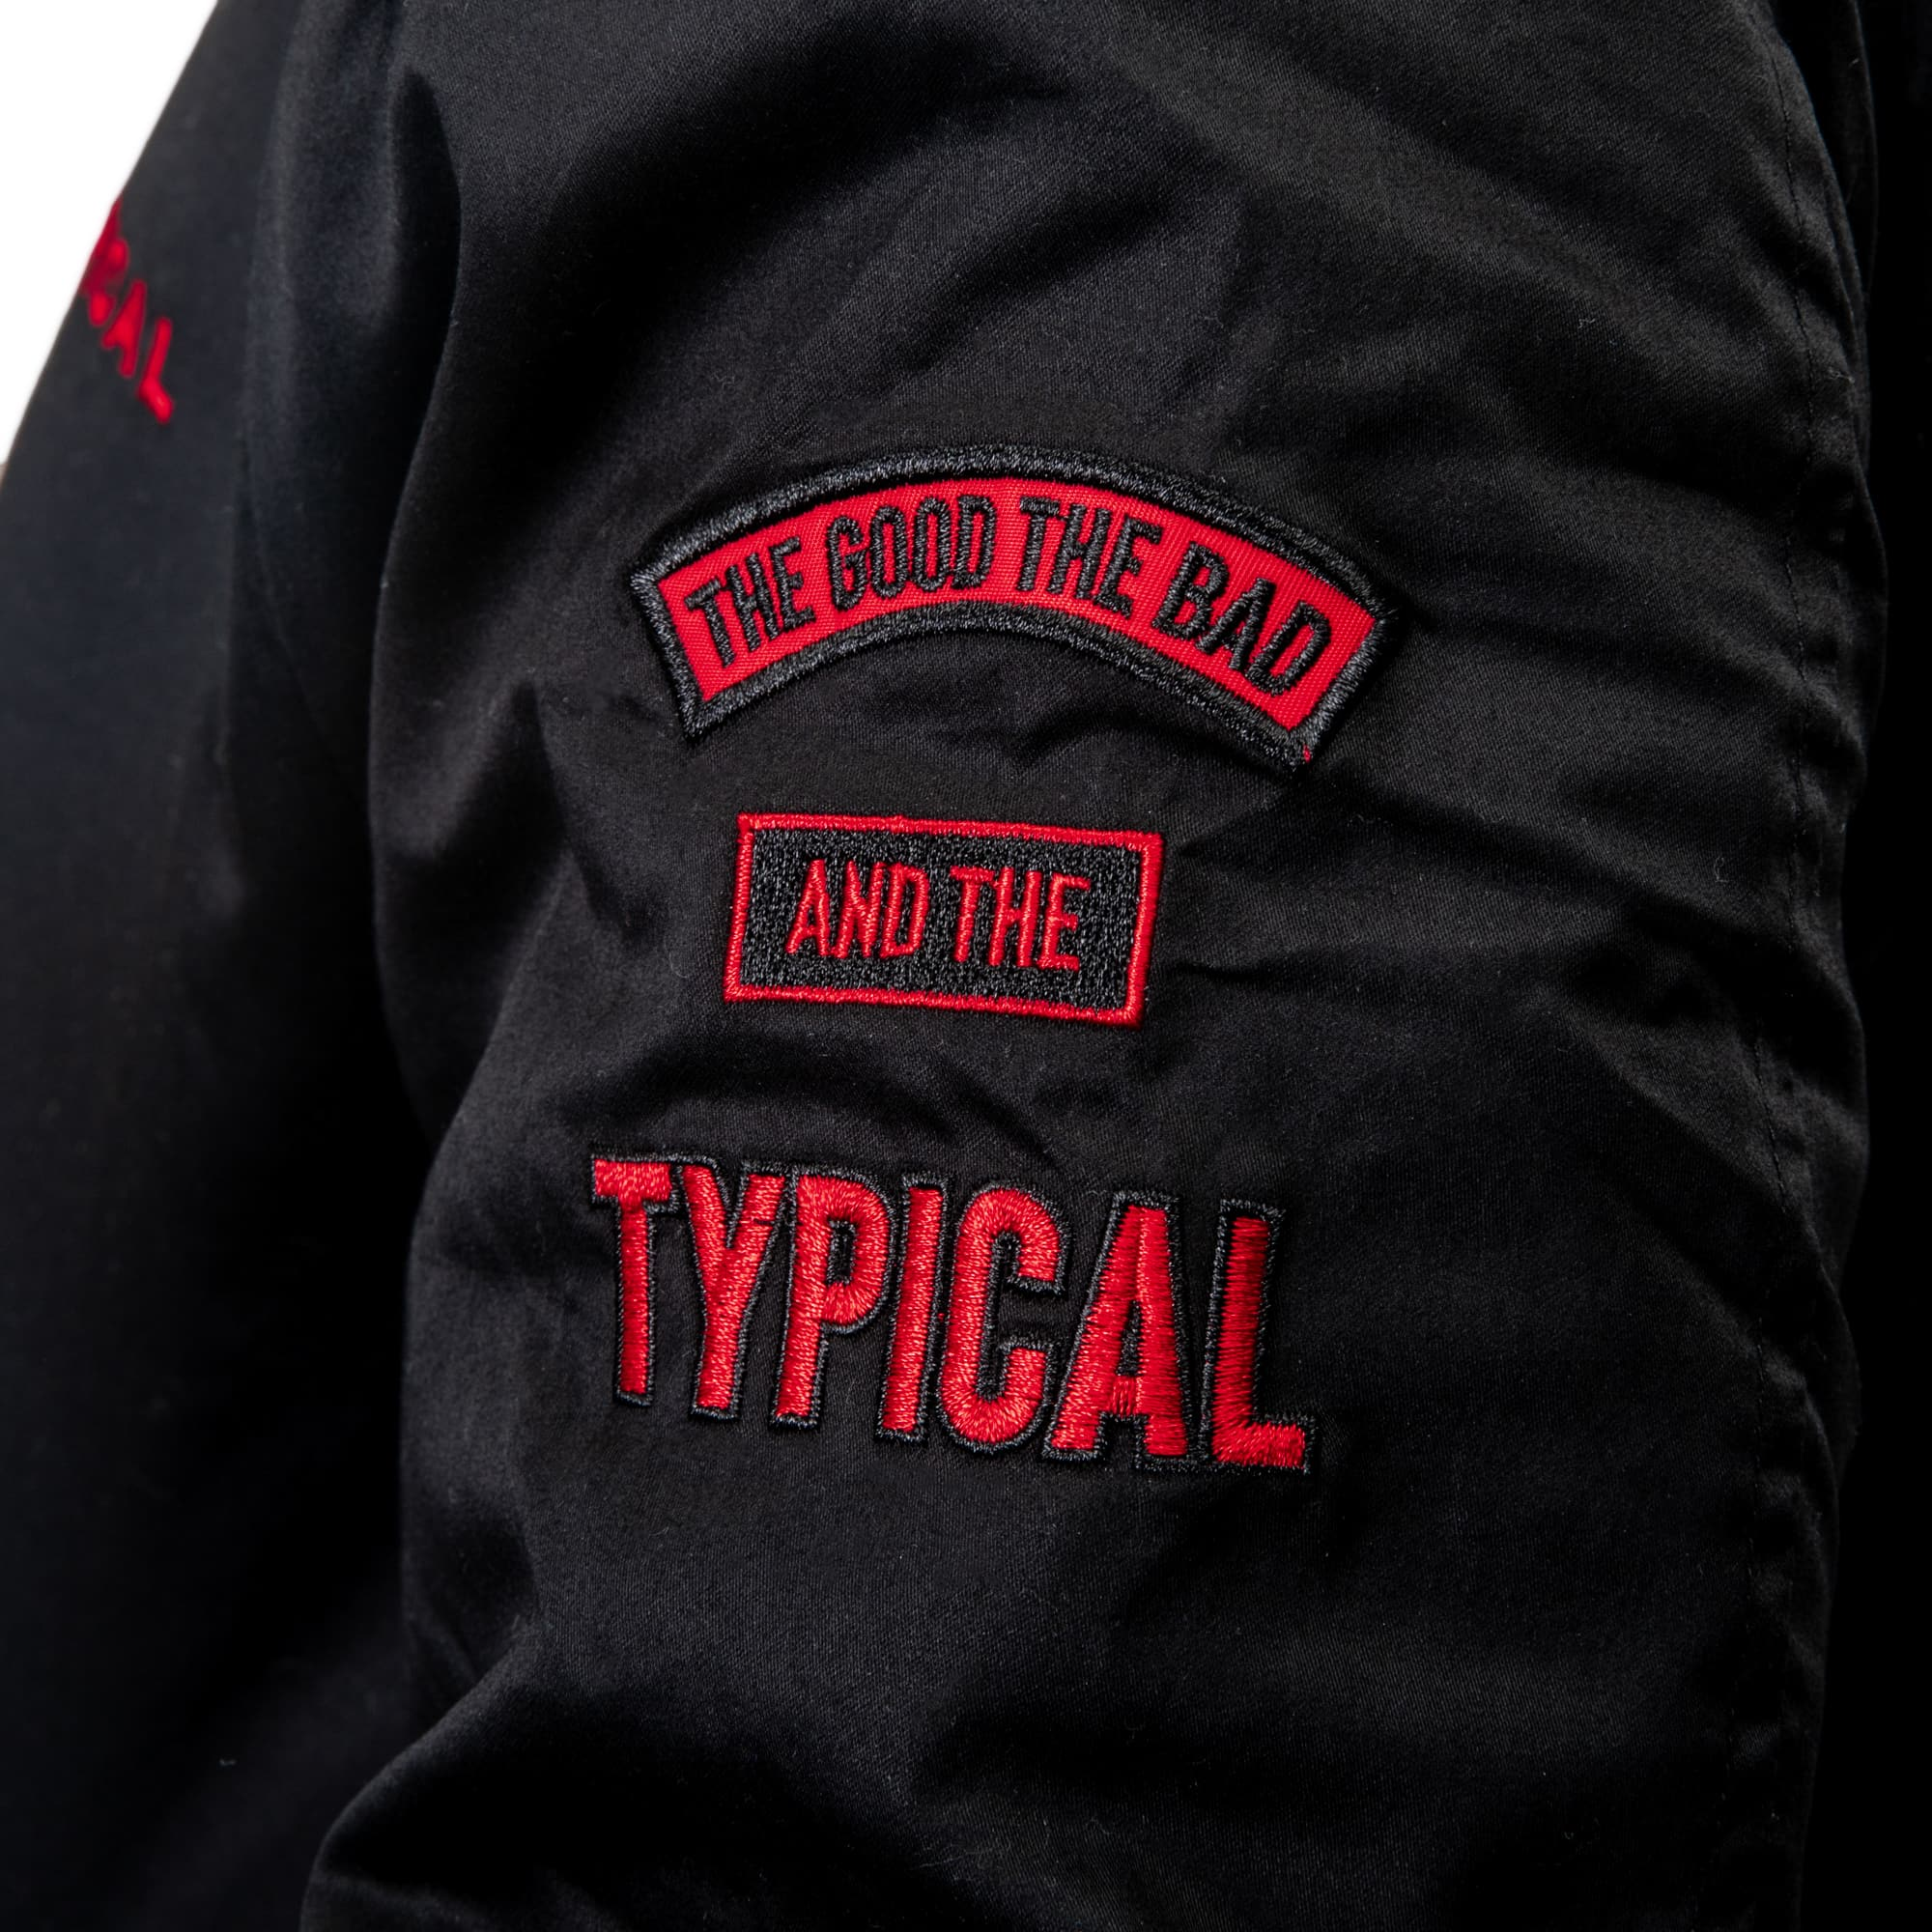 'Typical' Flight Jacket